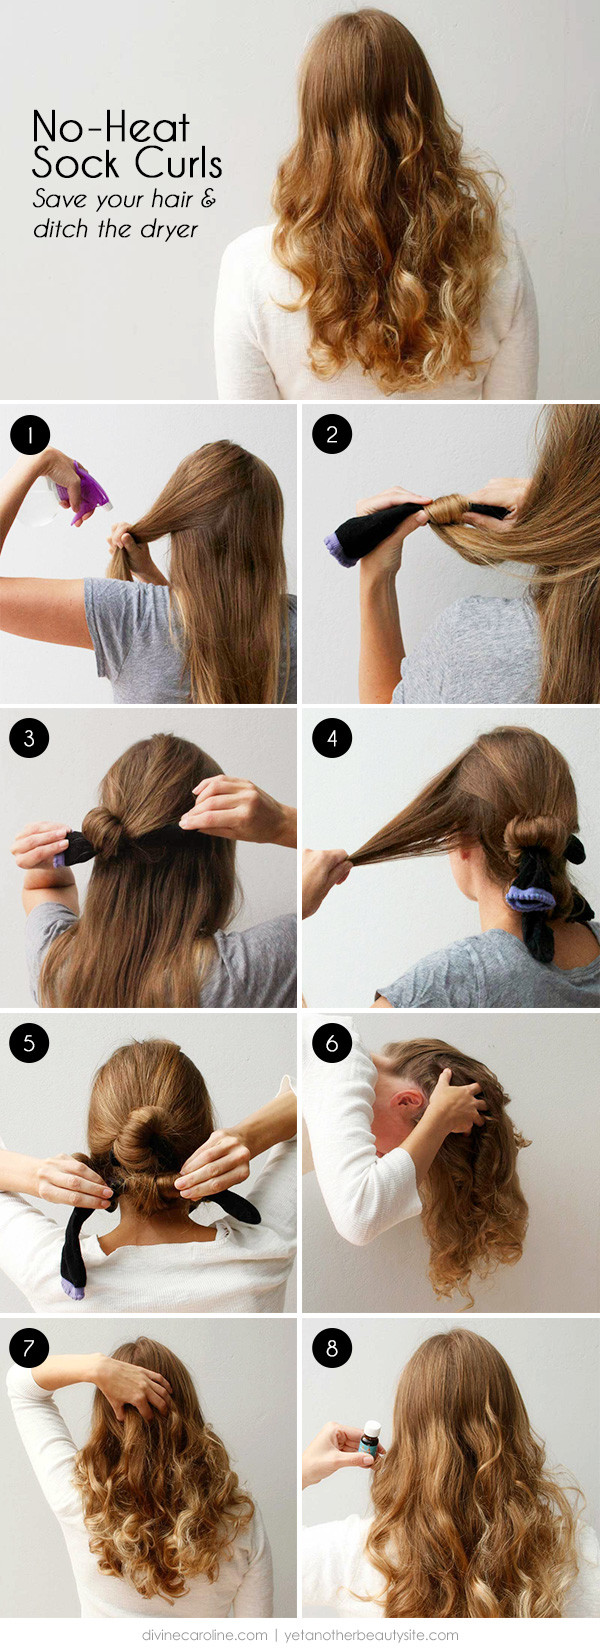 Best ideas about Easy Overnight Hairstyles . Save or Pin 10 Clever Ways to Get No Heat Beachy Waves Now.